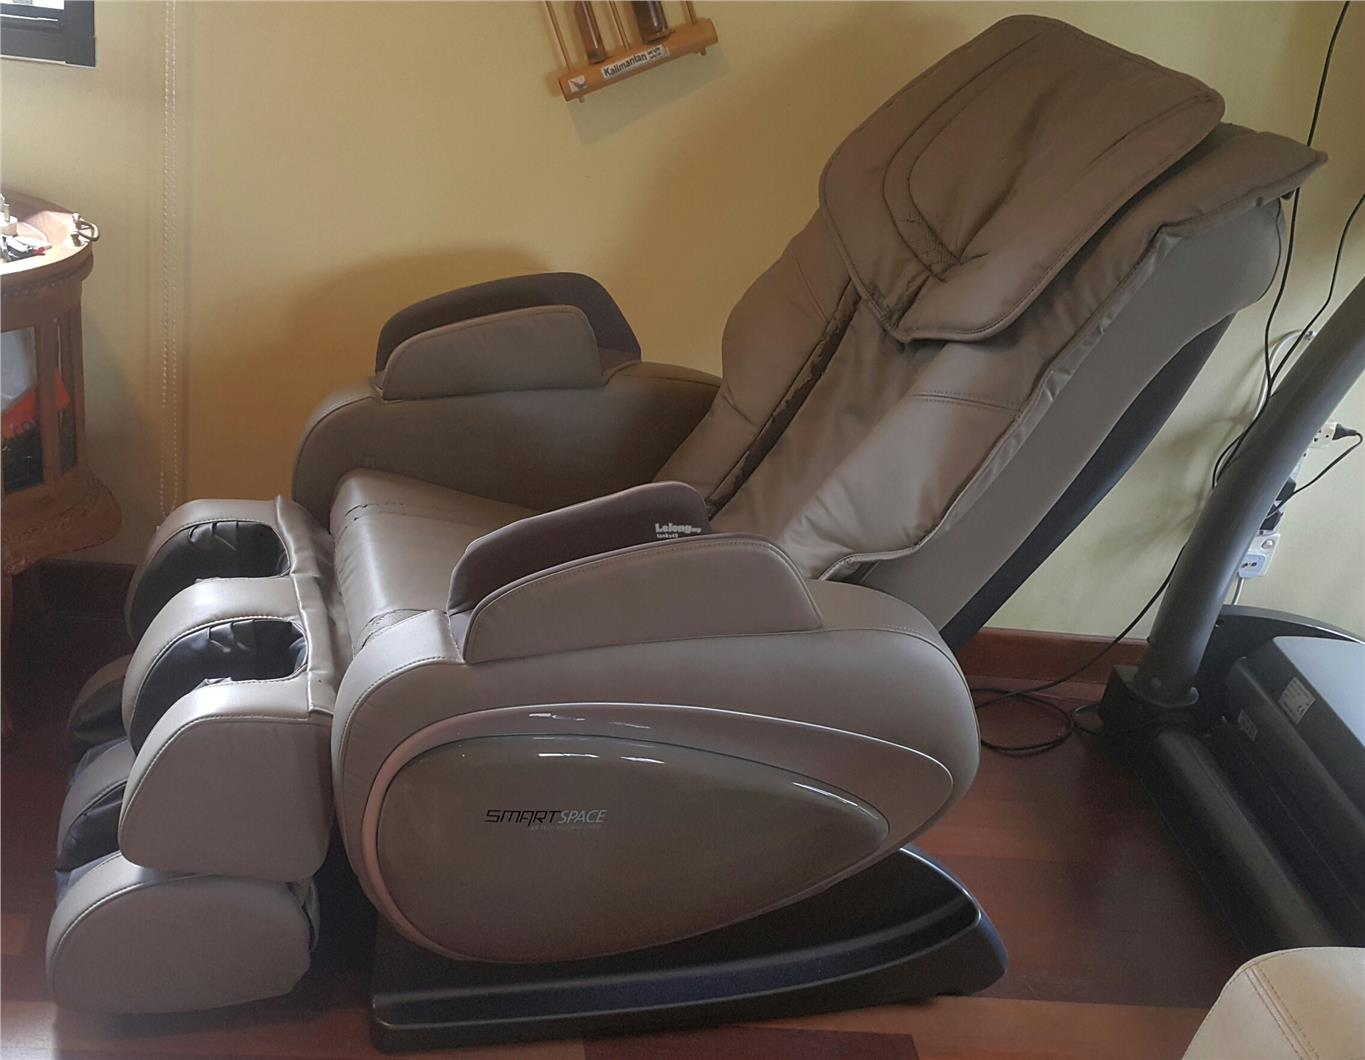 OGAWA SMART SPACE XD TECH MASSAGE CHAIR. U2039 U203a